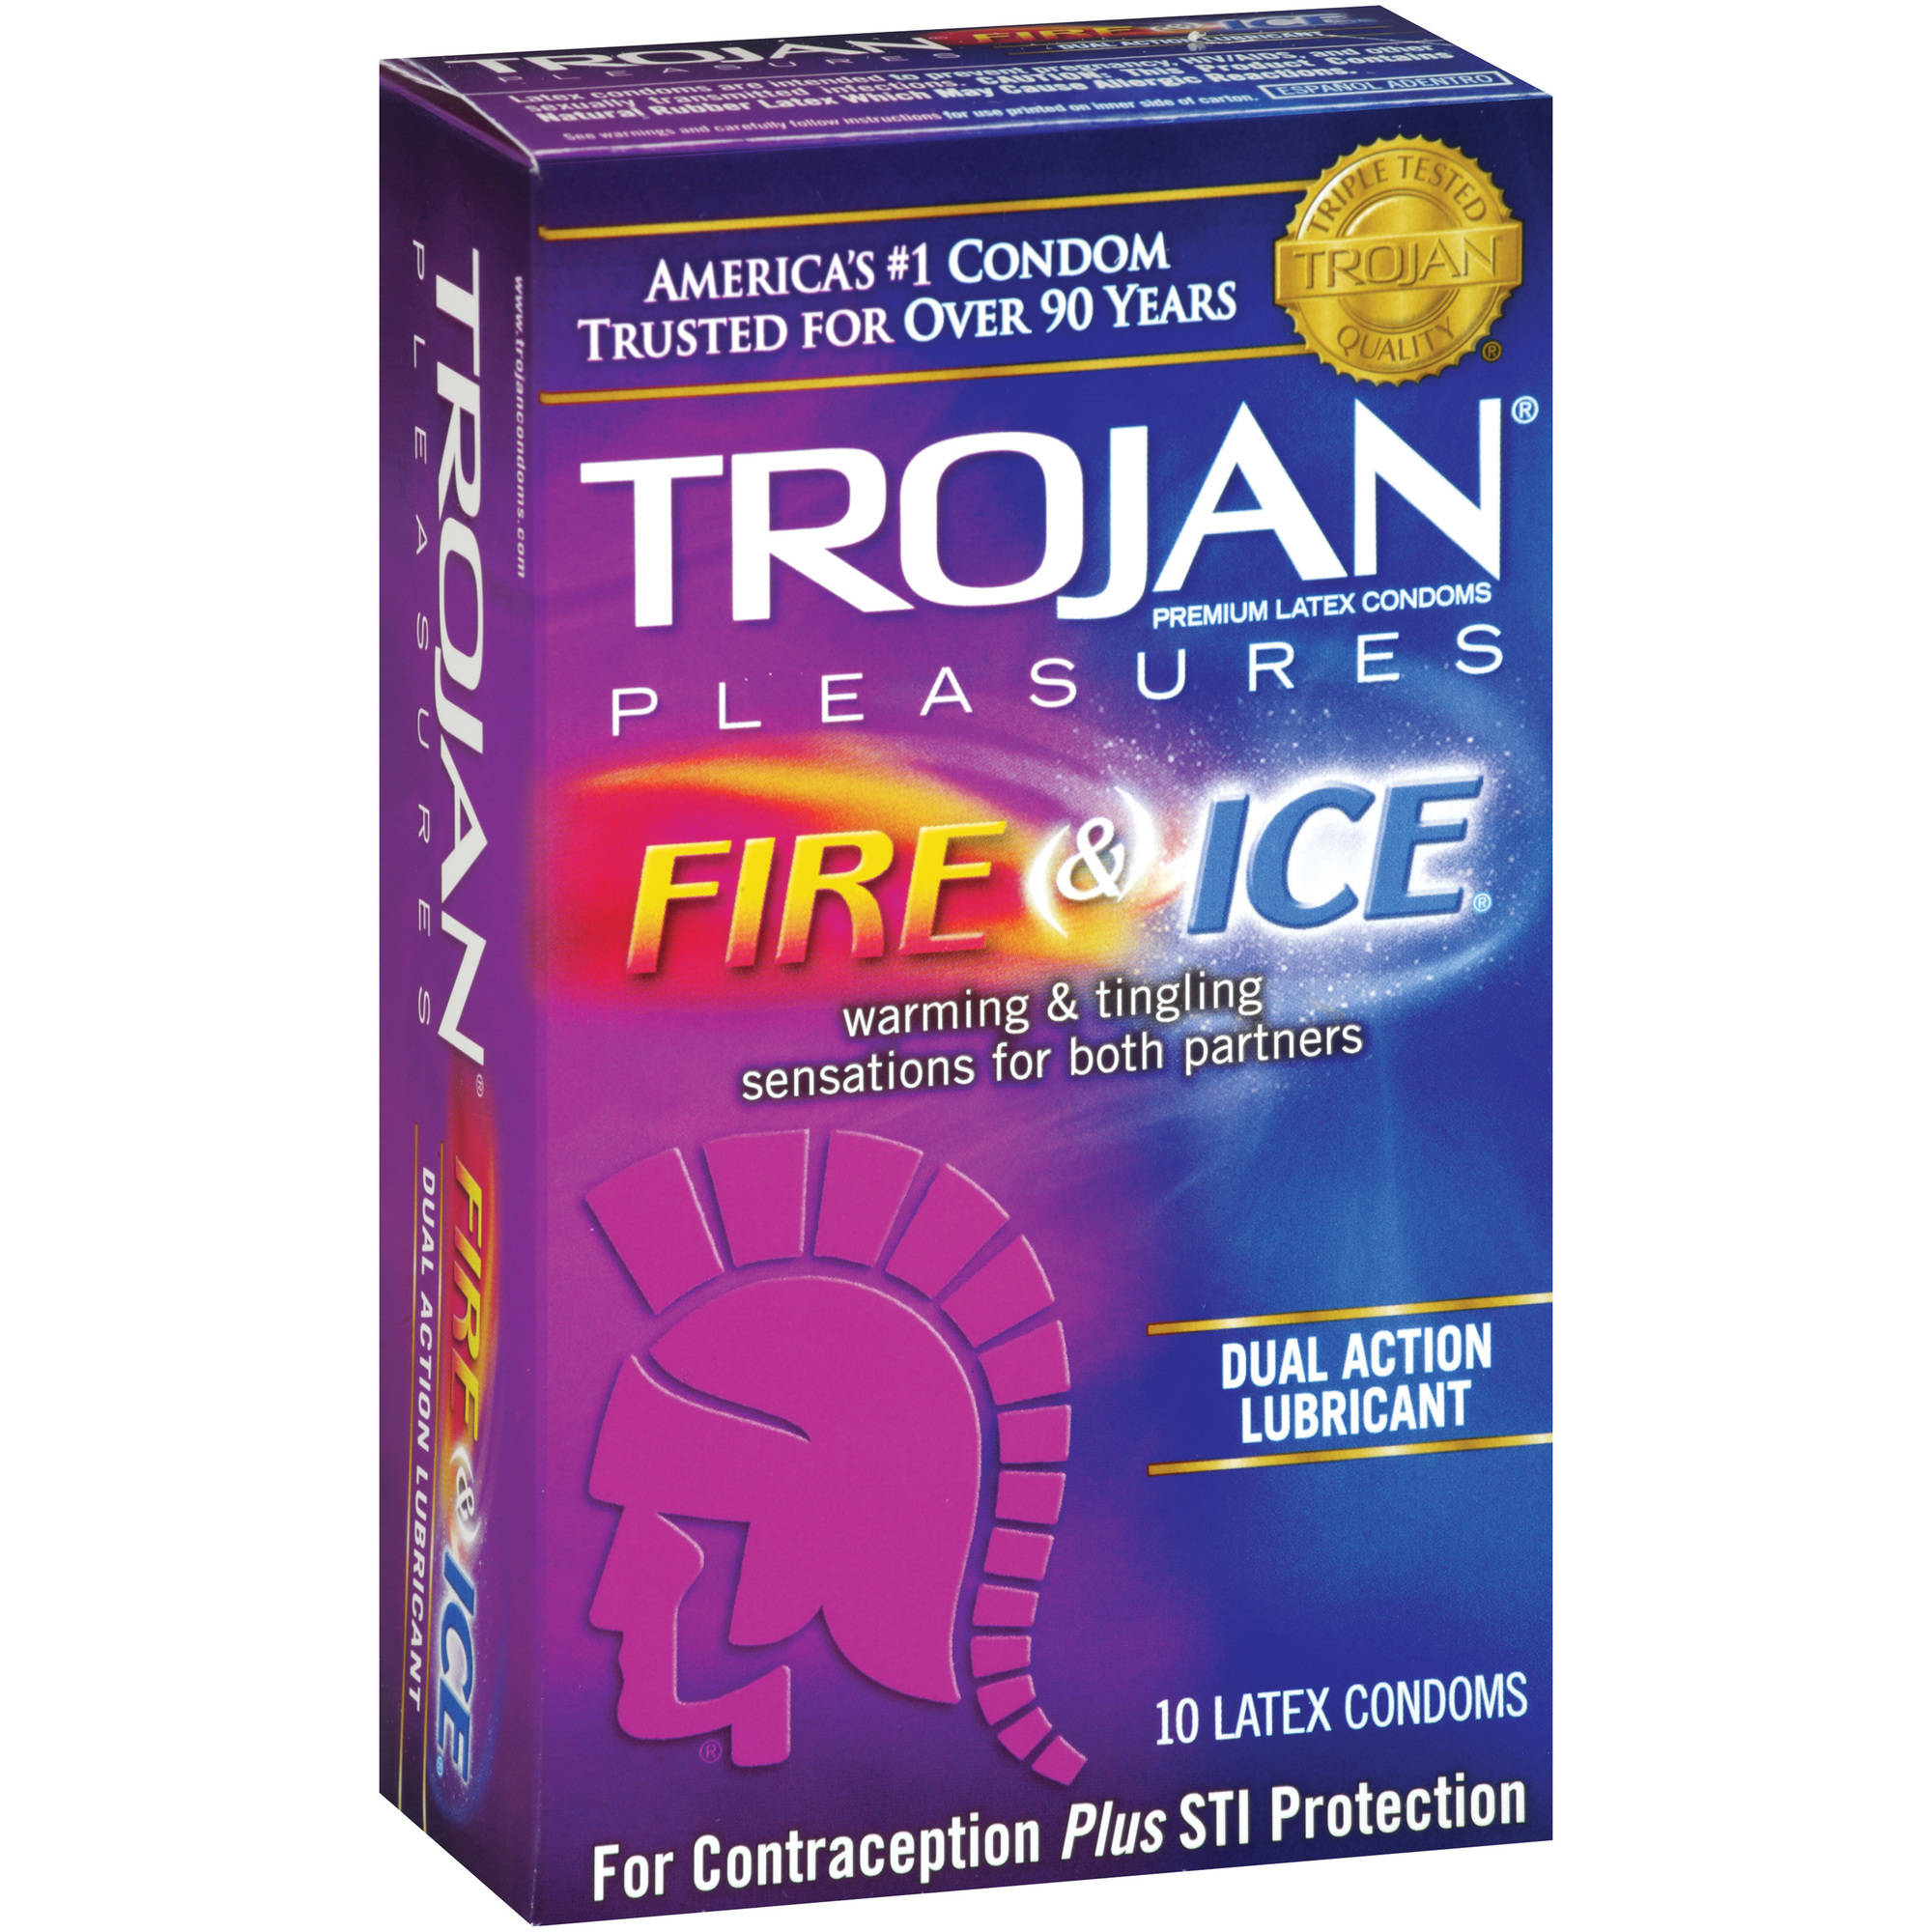 Trojan Pleasures Fire & Ice Premium Latex Condoms, 10 count